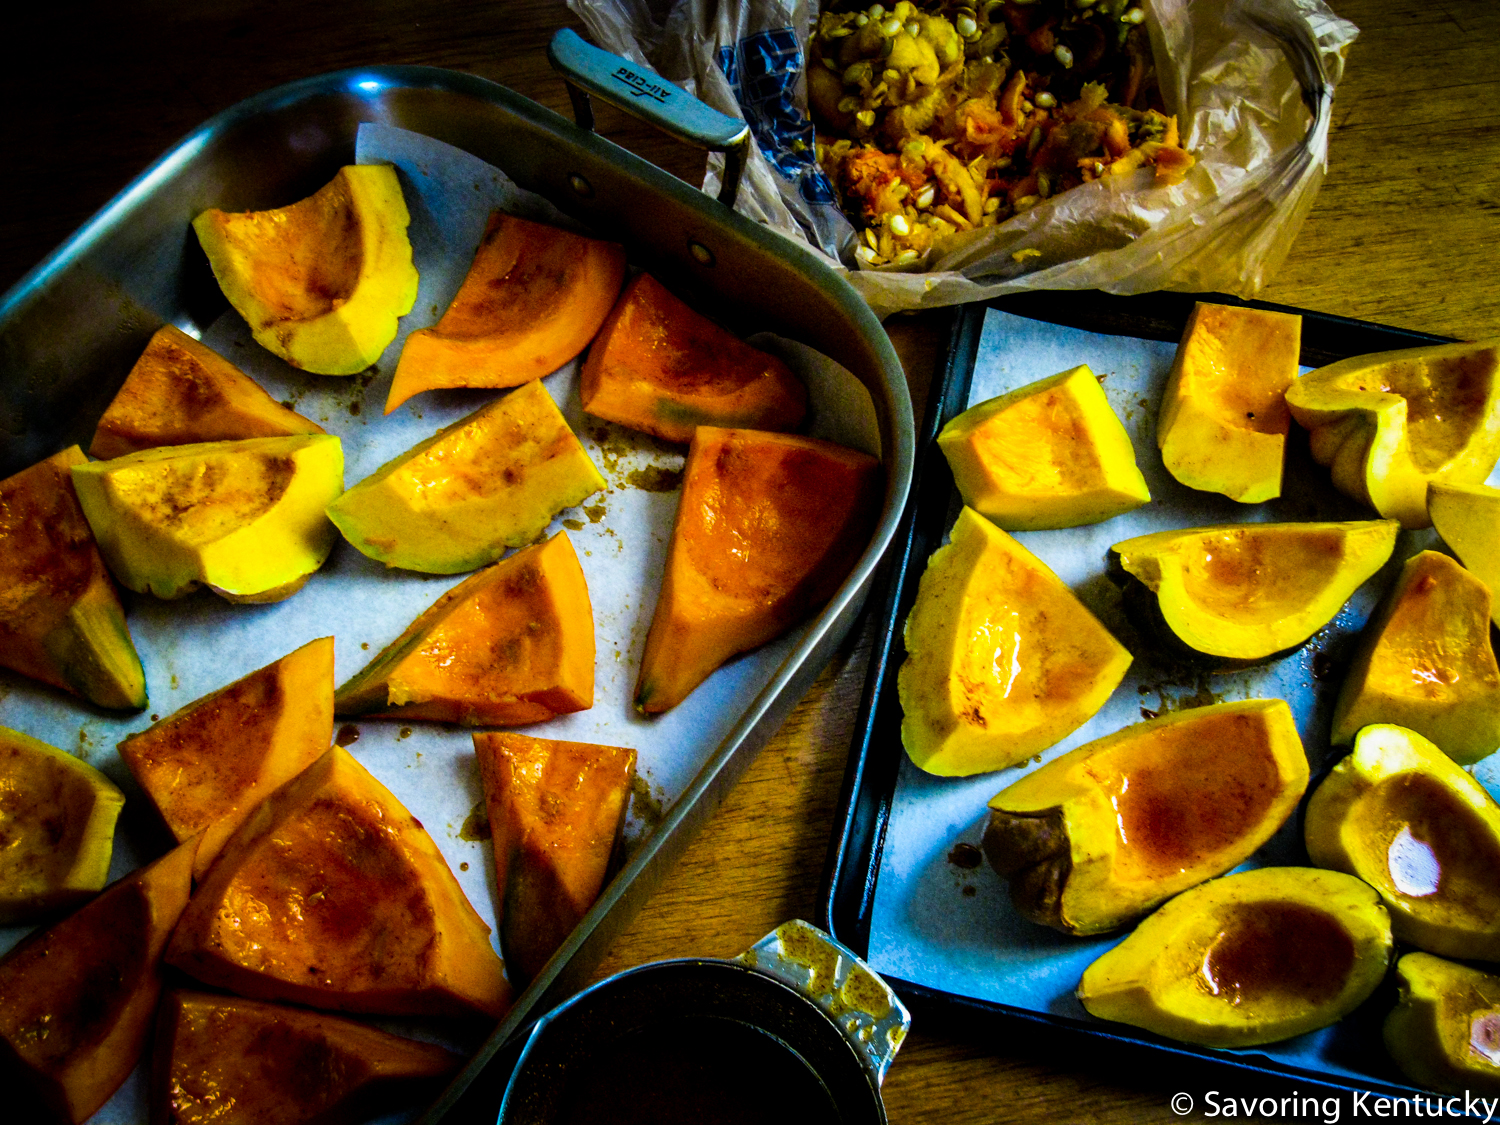 A mix of winter squashes ready for roasting: cut and rubbed with a seat-of-the-pants blend, below; seeds and pith extracted for the neighborhood chickens, above. (Better people than we are might clean, roast, and eat those seeds, but at least we put them to good use!)